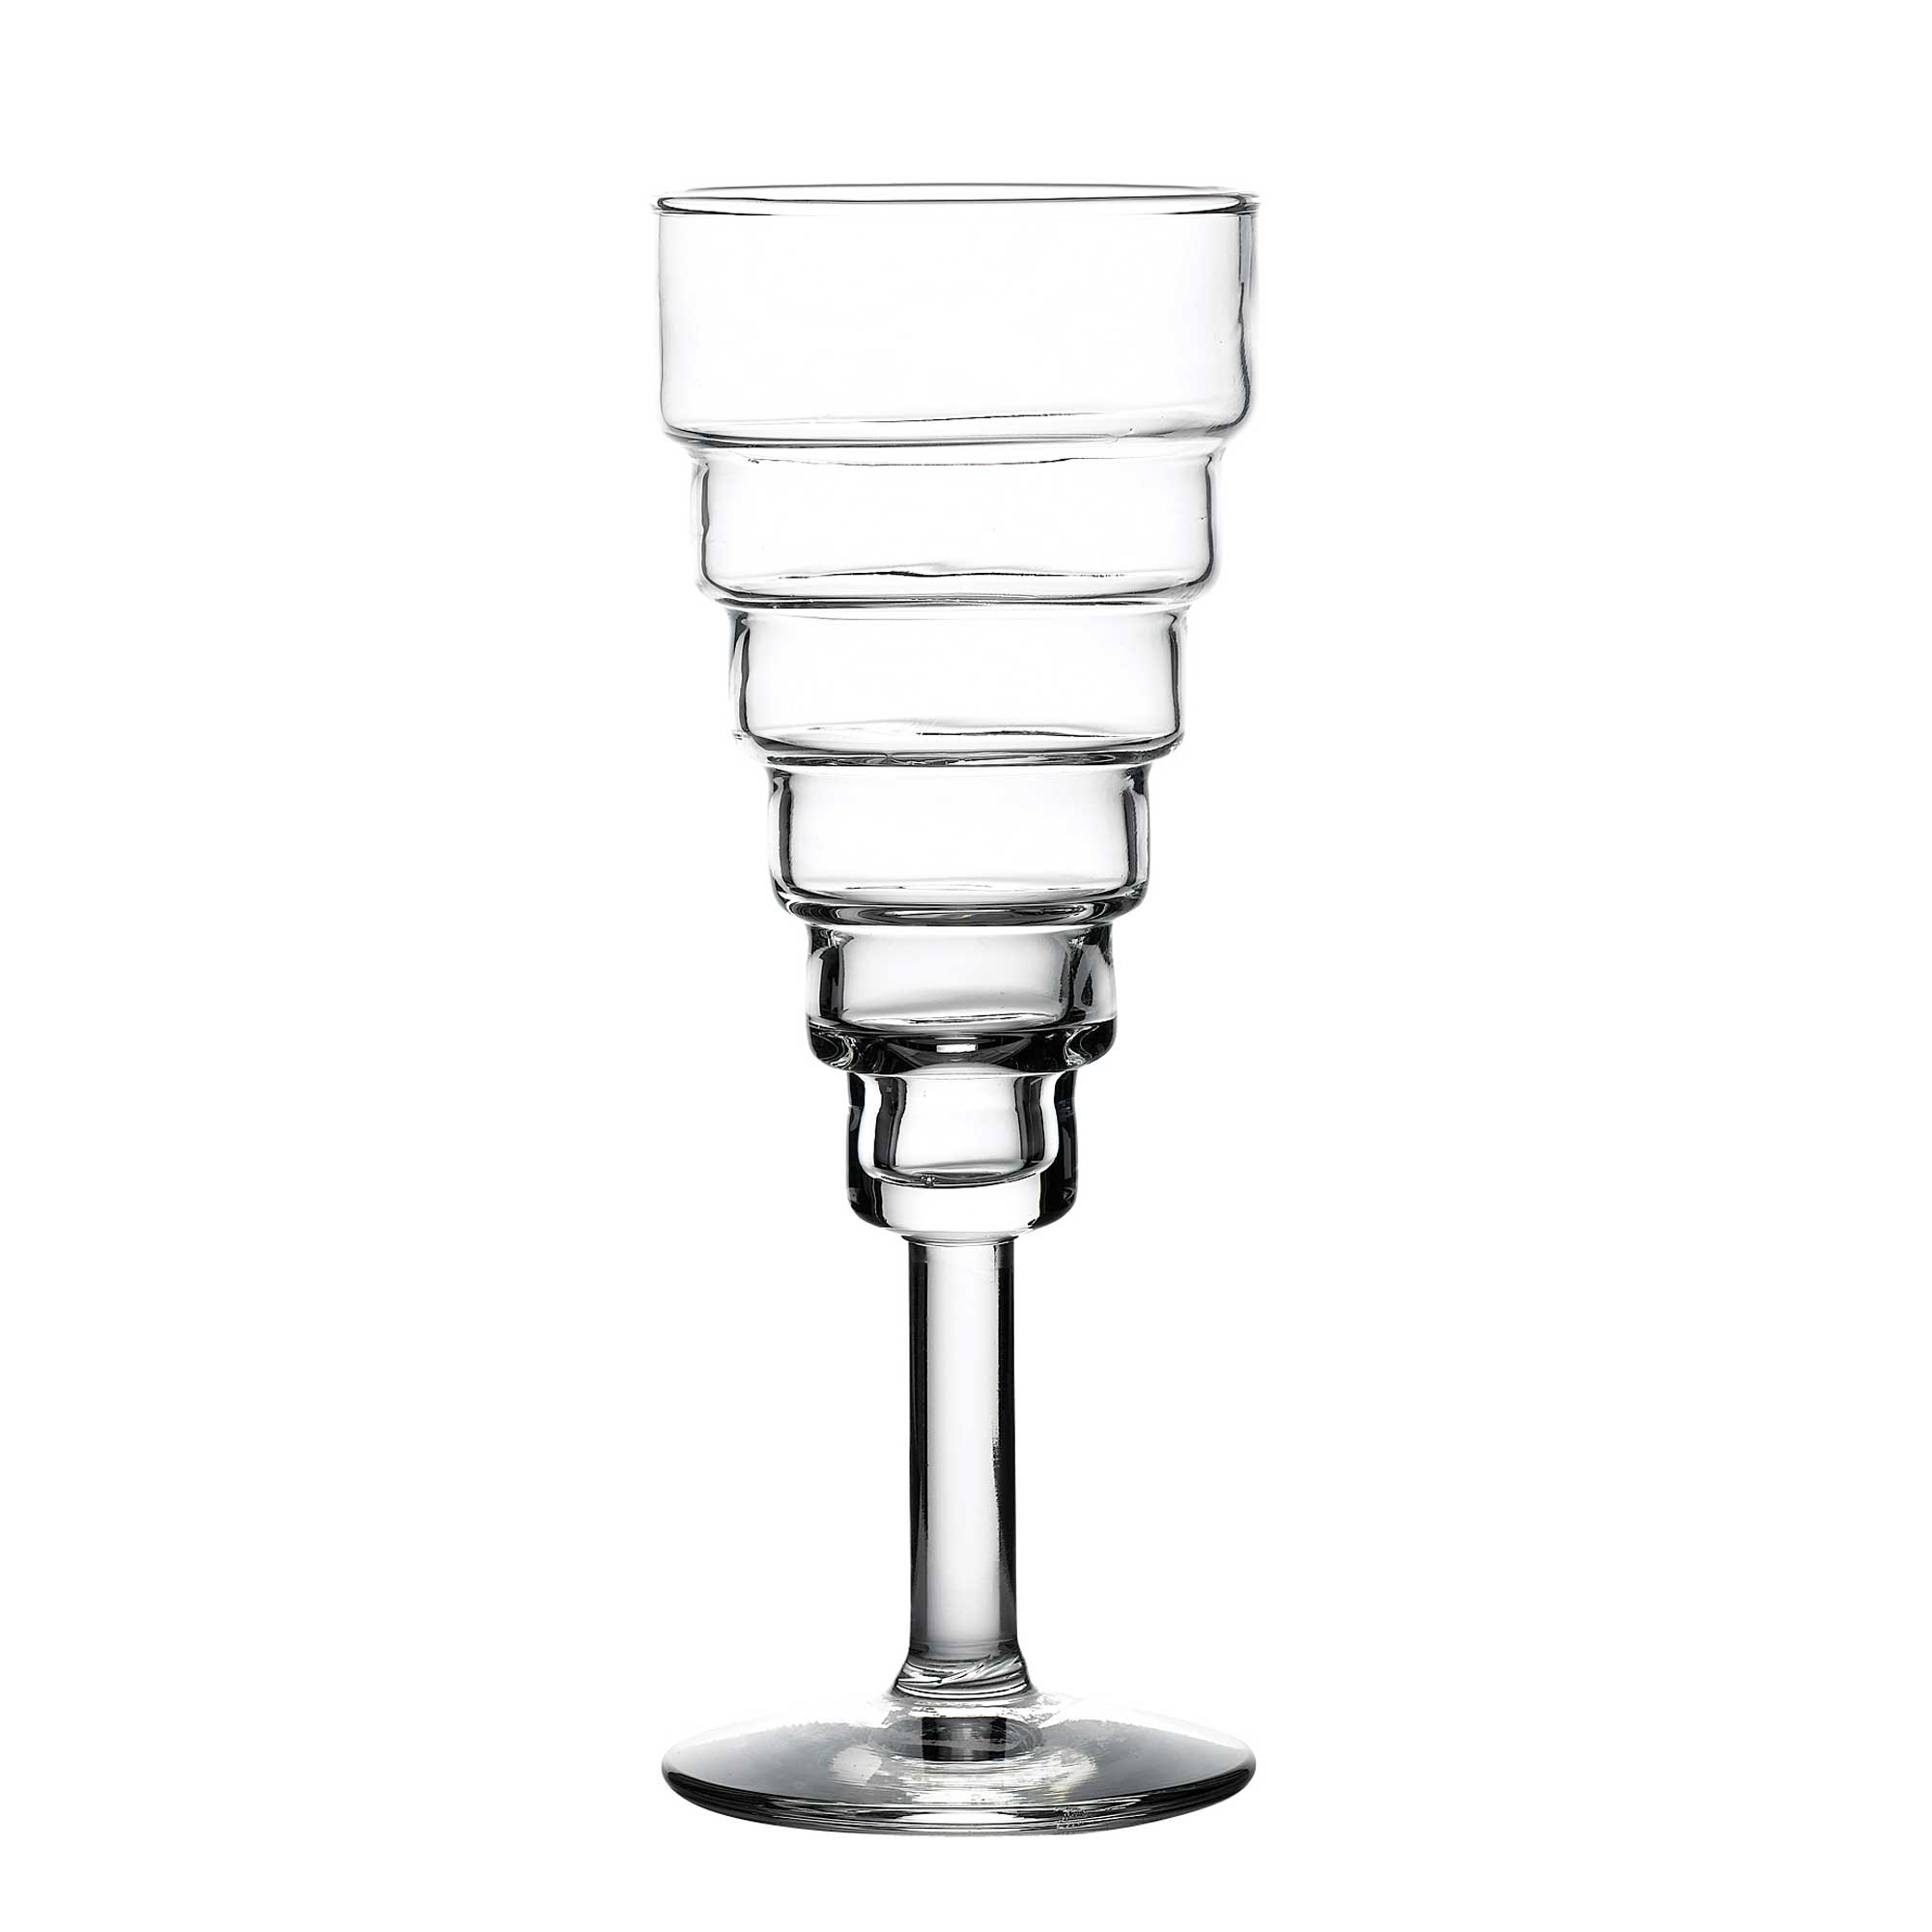 Etore flutes 140ml unique champagne glasses at drinkstuff - Unusual champagne flutes ...